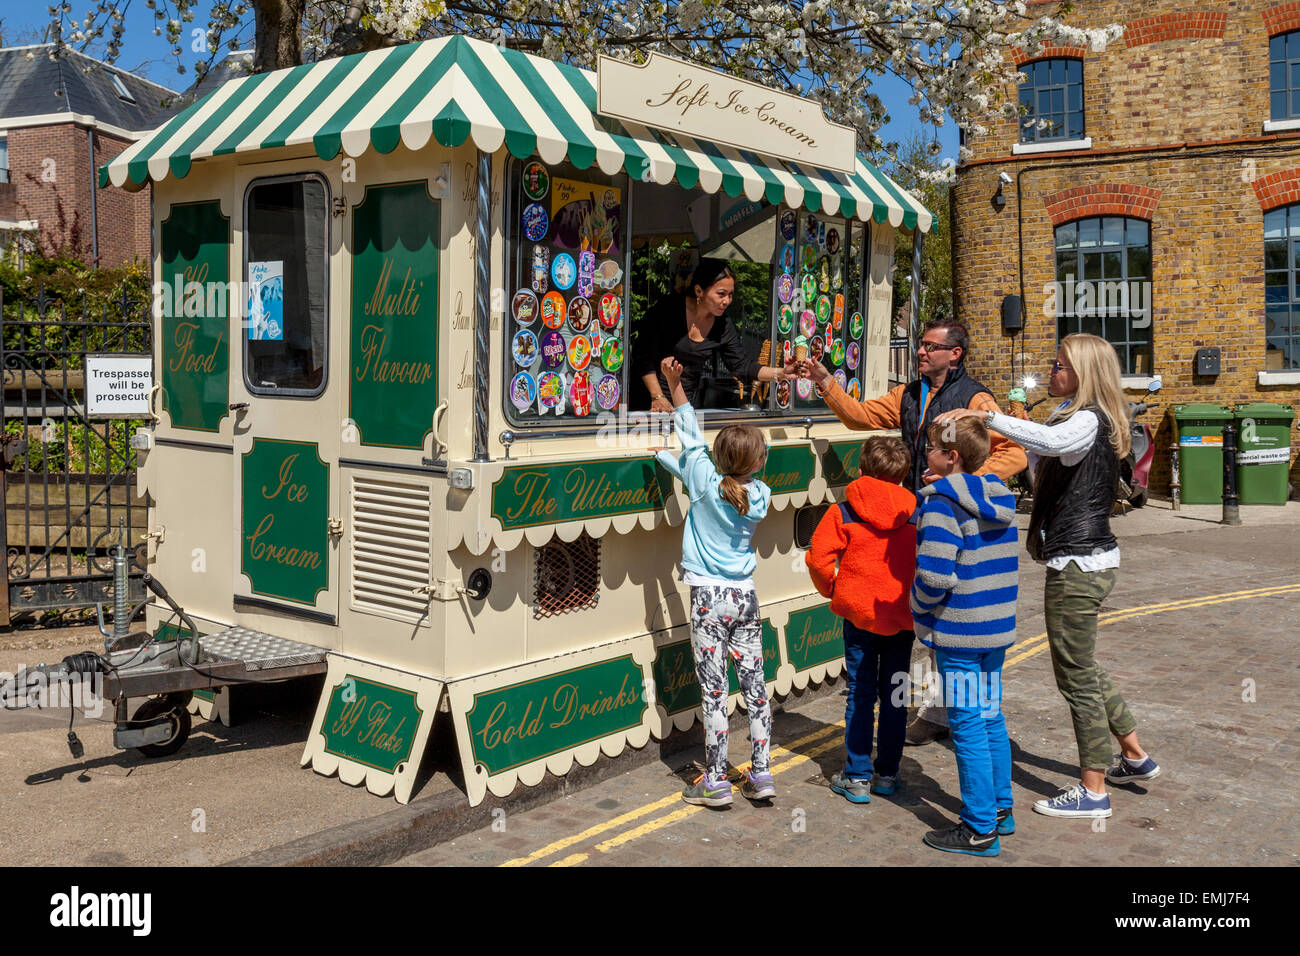 A Family Buying Ice Creams From a Traditional Ice Cream Van, Richmond Upon Thames, London, England - Stock Image